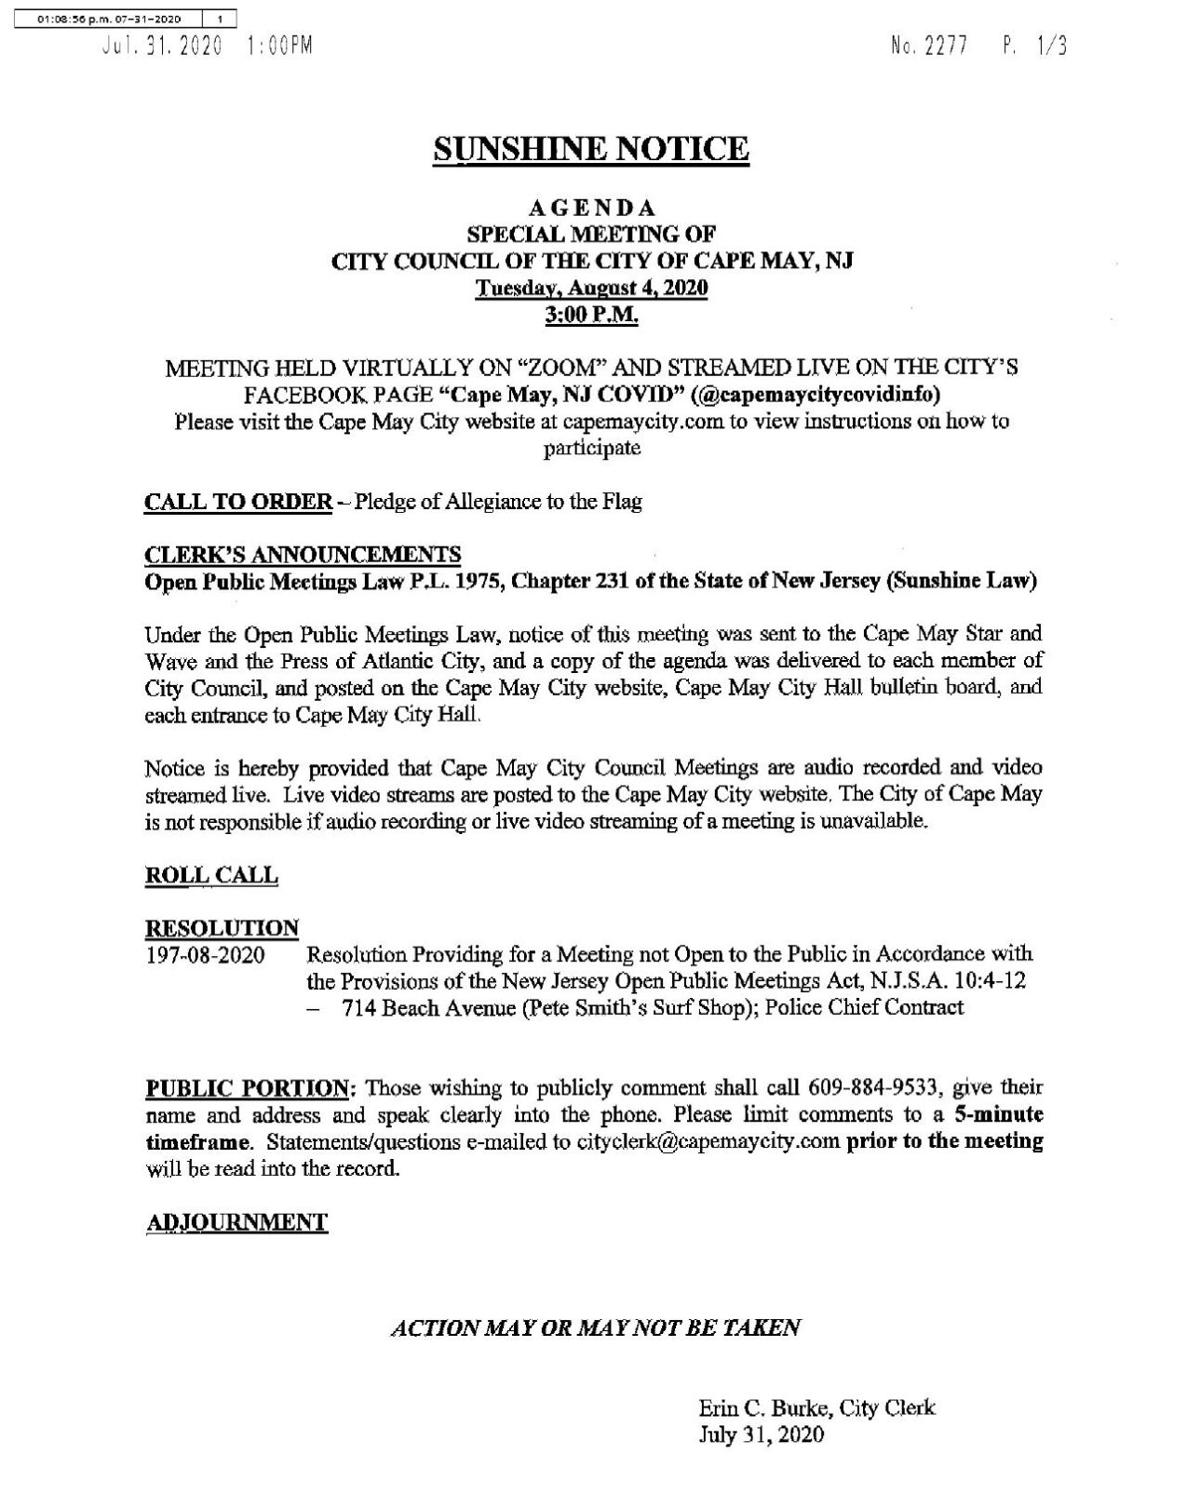 Cape May City Council Special Meeting Agenda Aug. 4, 2020